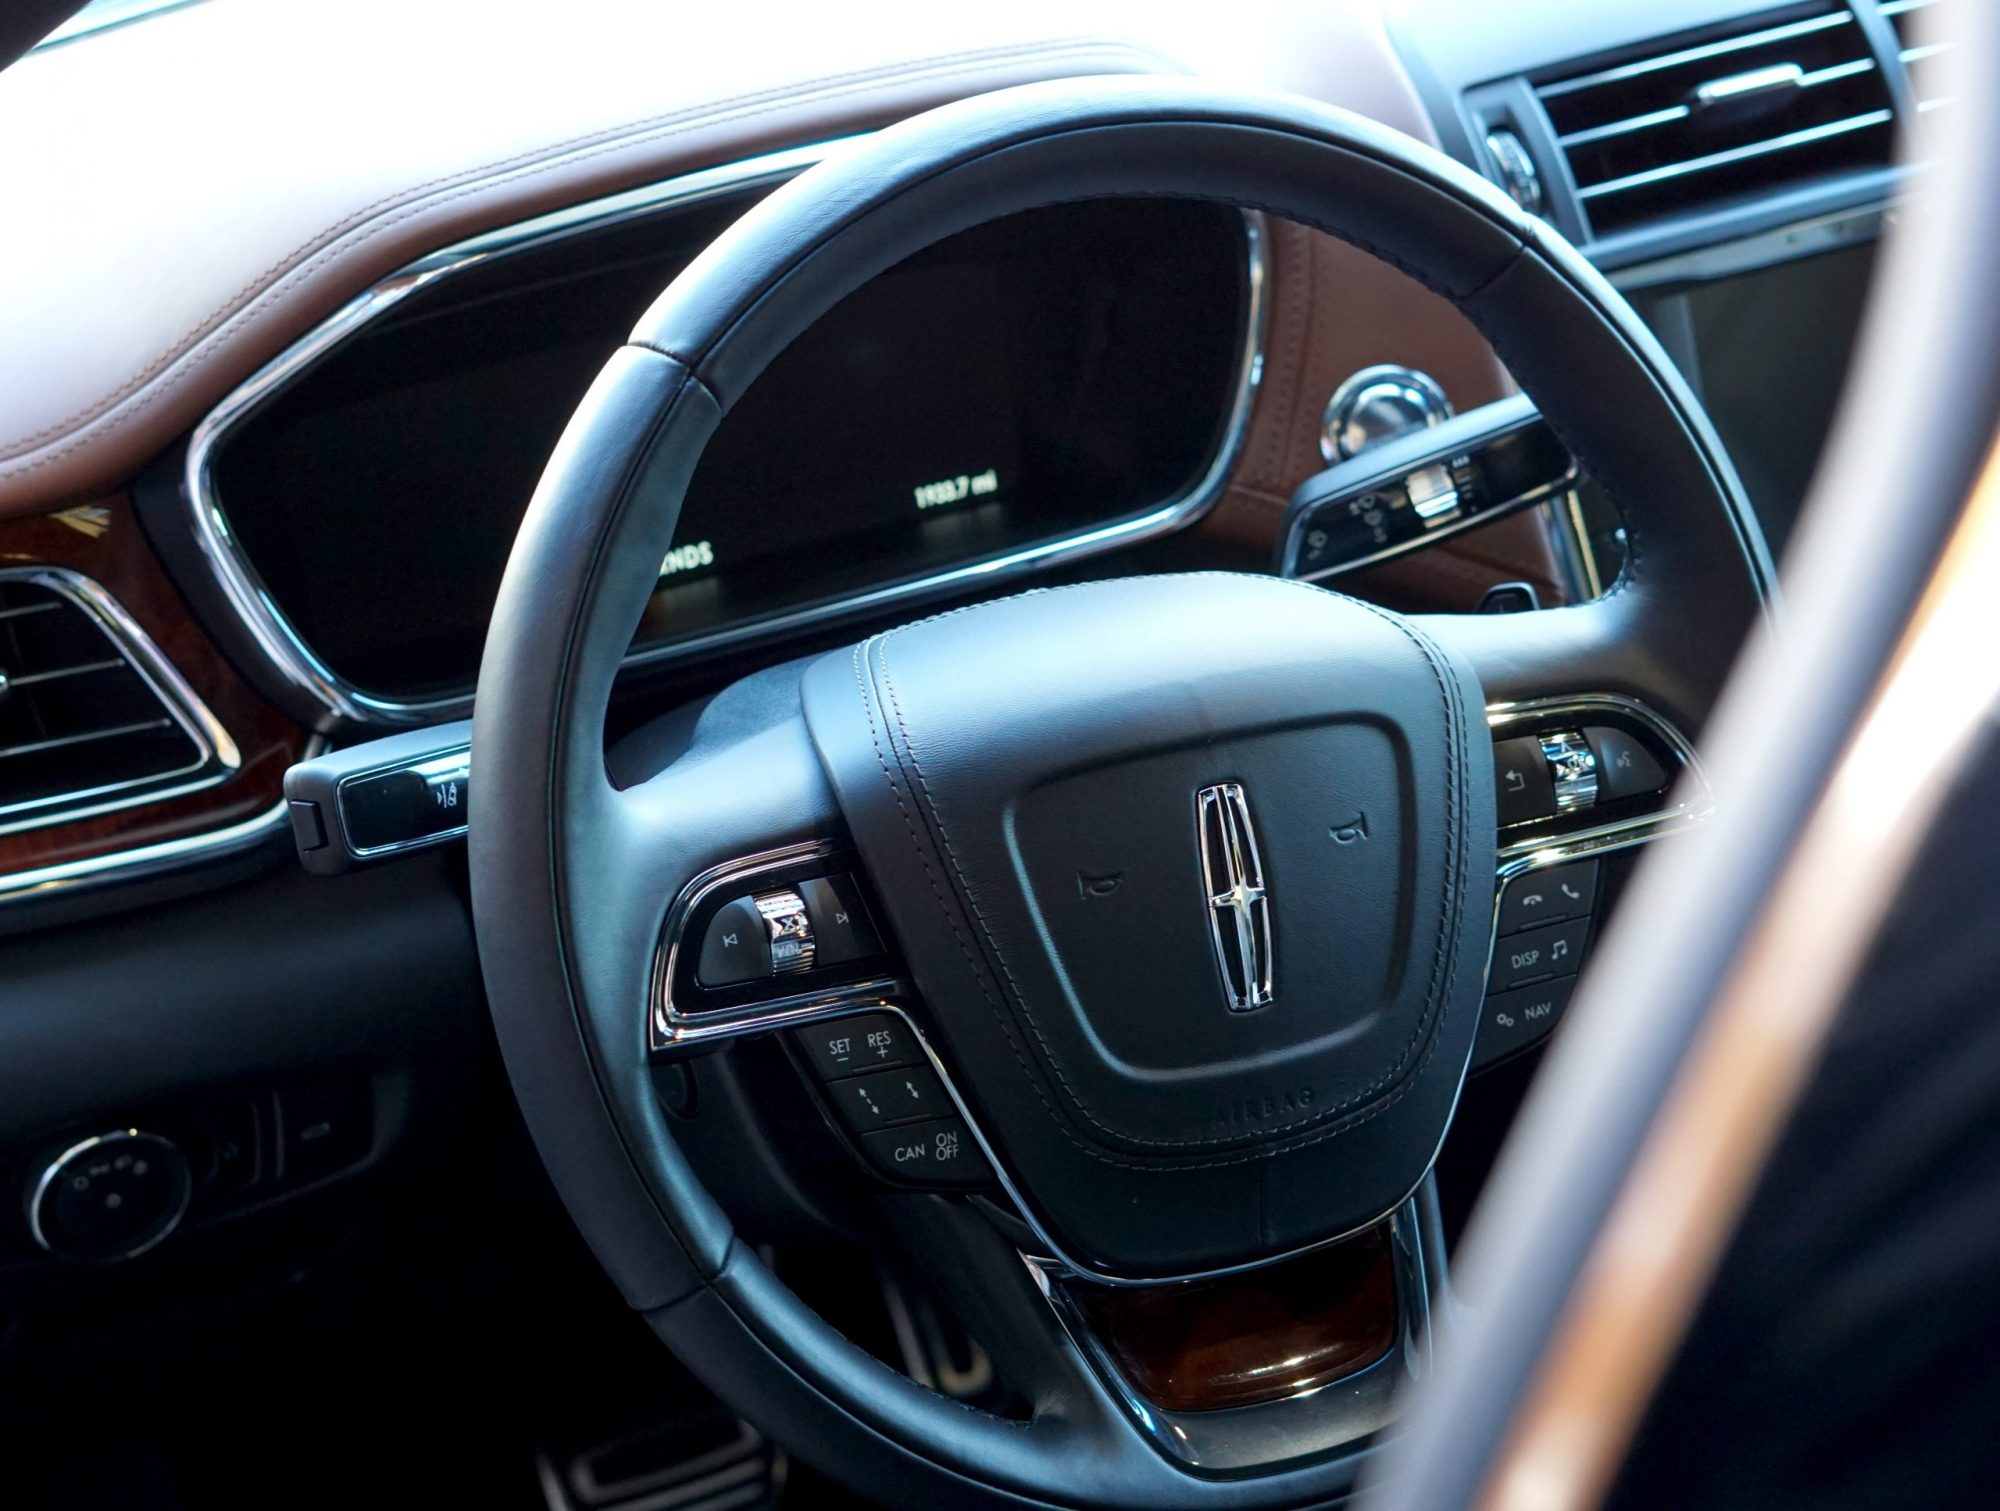 2017-lincoln-continental-steering-wheel-details